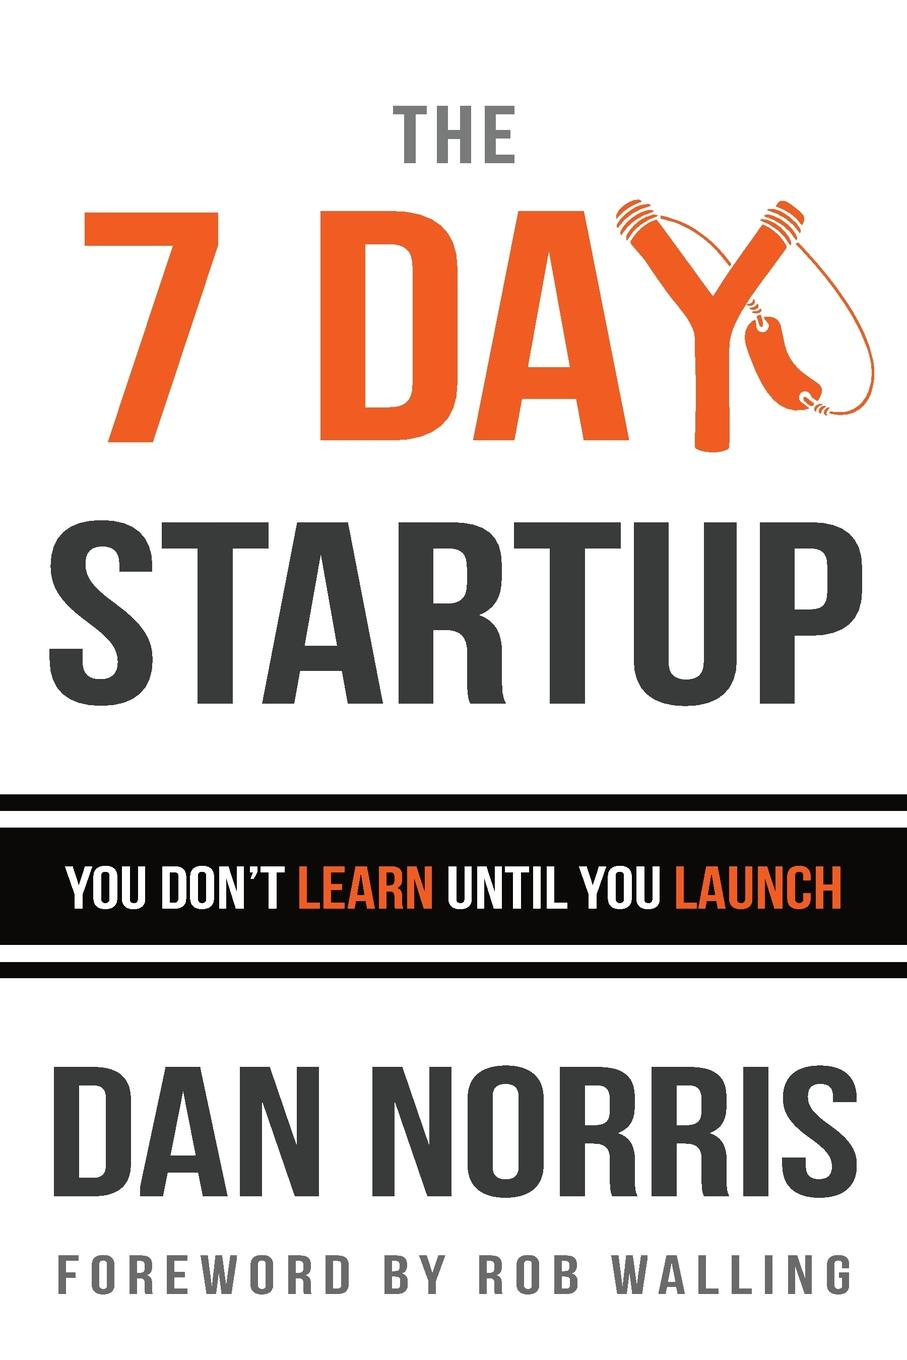 Dan Norris The 7 Day Startup. You Don.t Learn Until You Launch startup playbook david s kidder